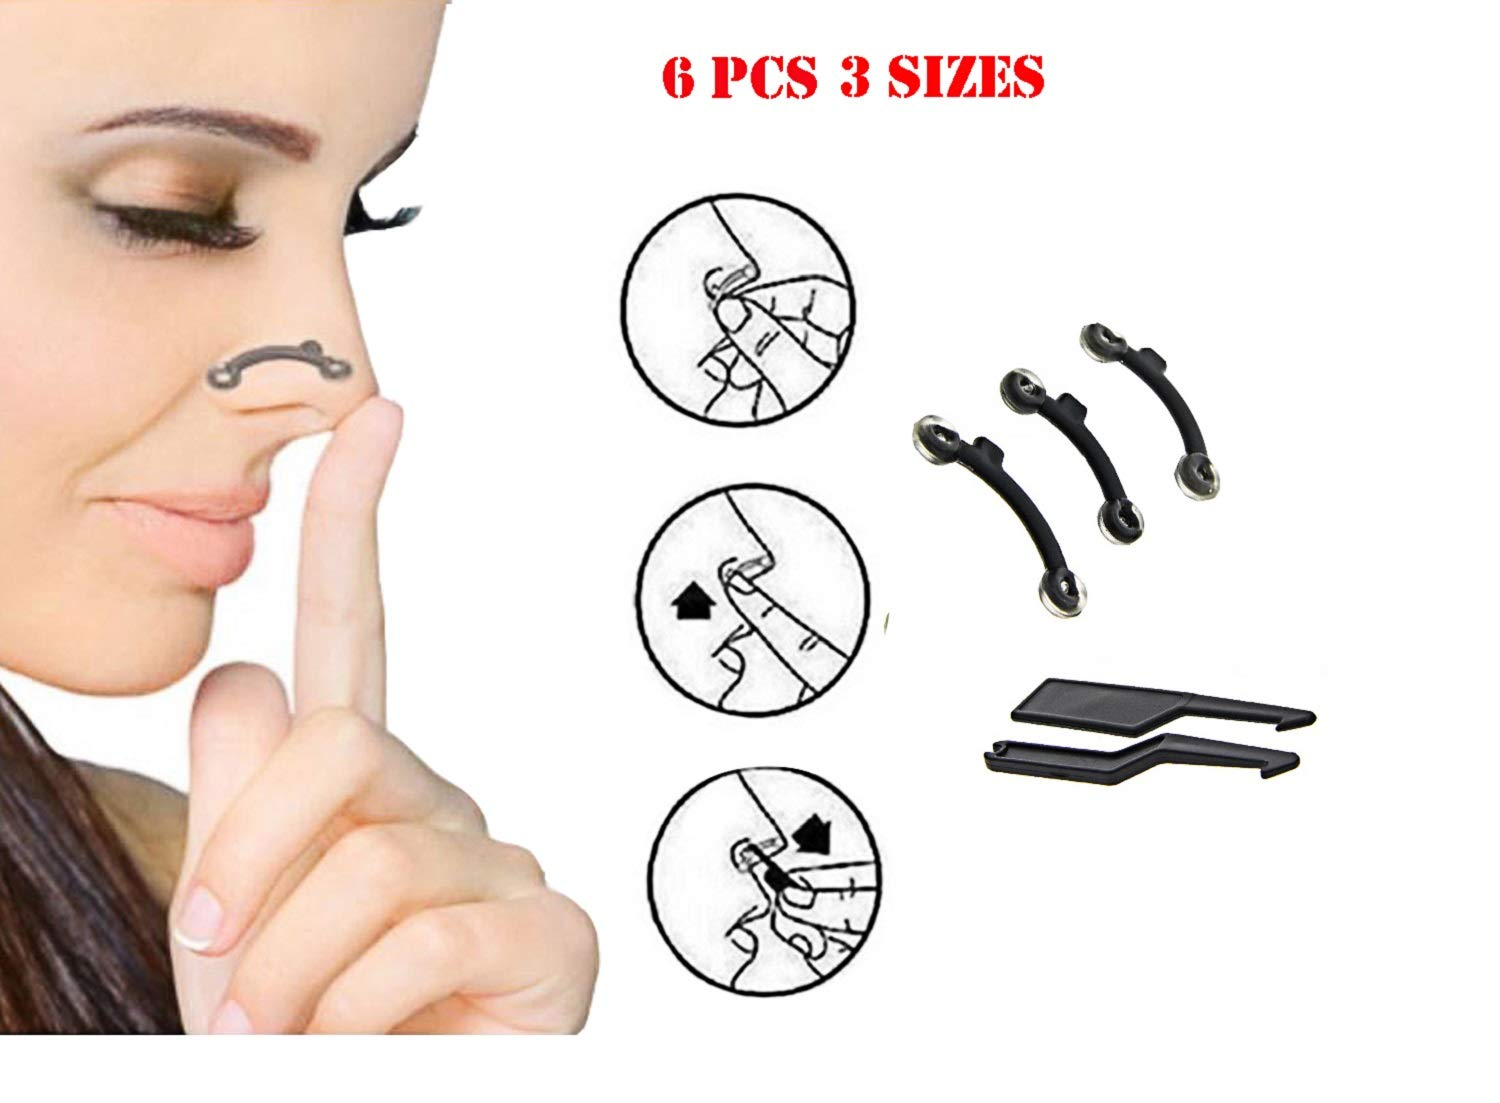 6PCS/Set 3 Sizes Beauty Nose Up Lifting Bridge Shaper Massage Tool No Pain Nose Shaping Clip Clipper Women Girl Massager by AdvancedShop